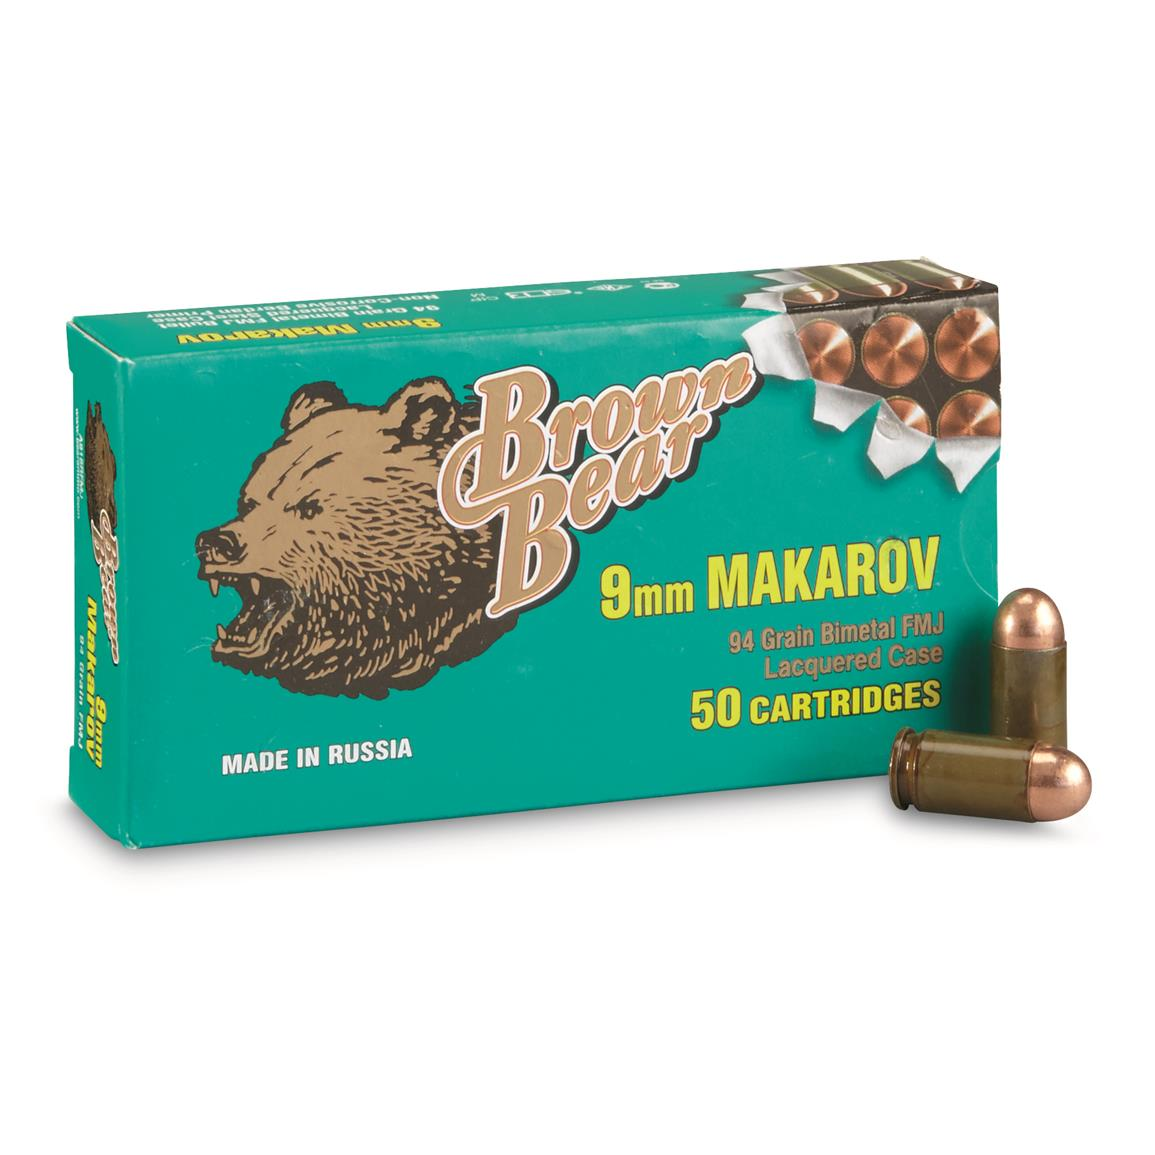 Brown Bear, 9x18mm Makarov, FMJ, 94 Grain, 50 Rounds